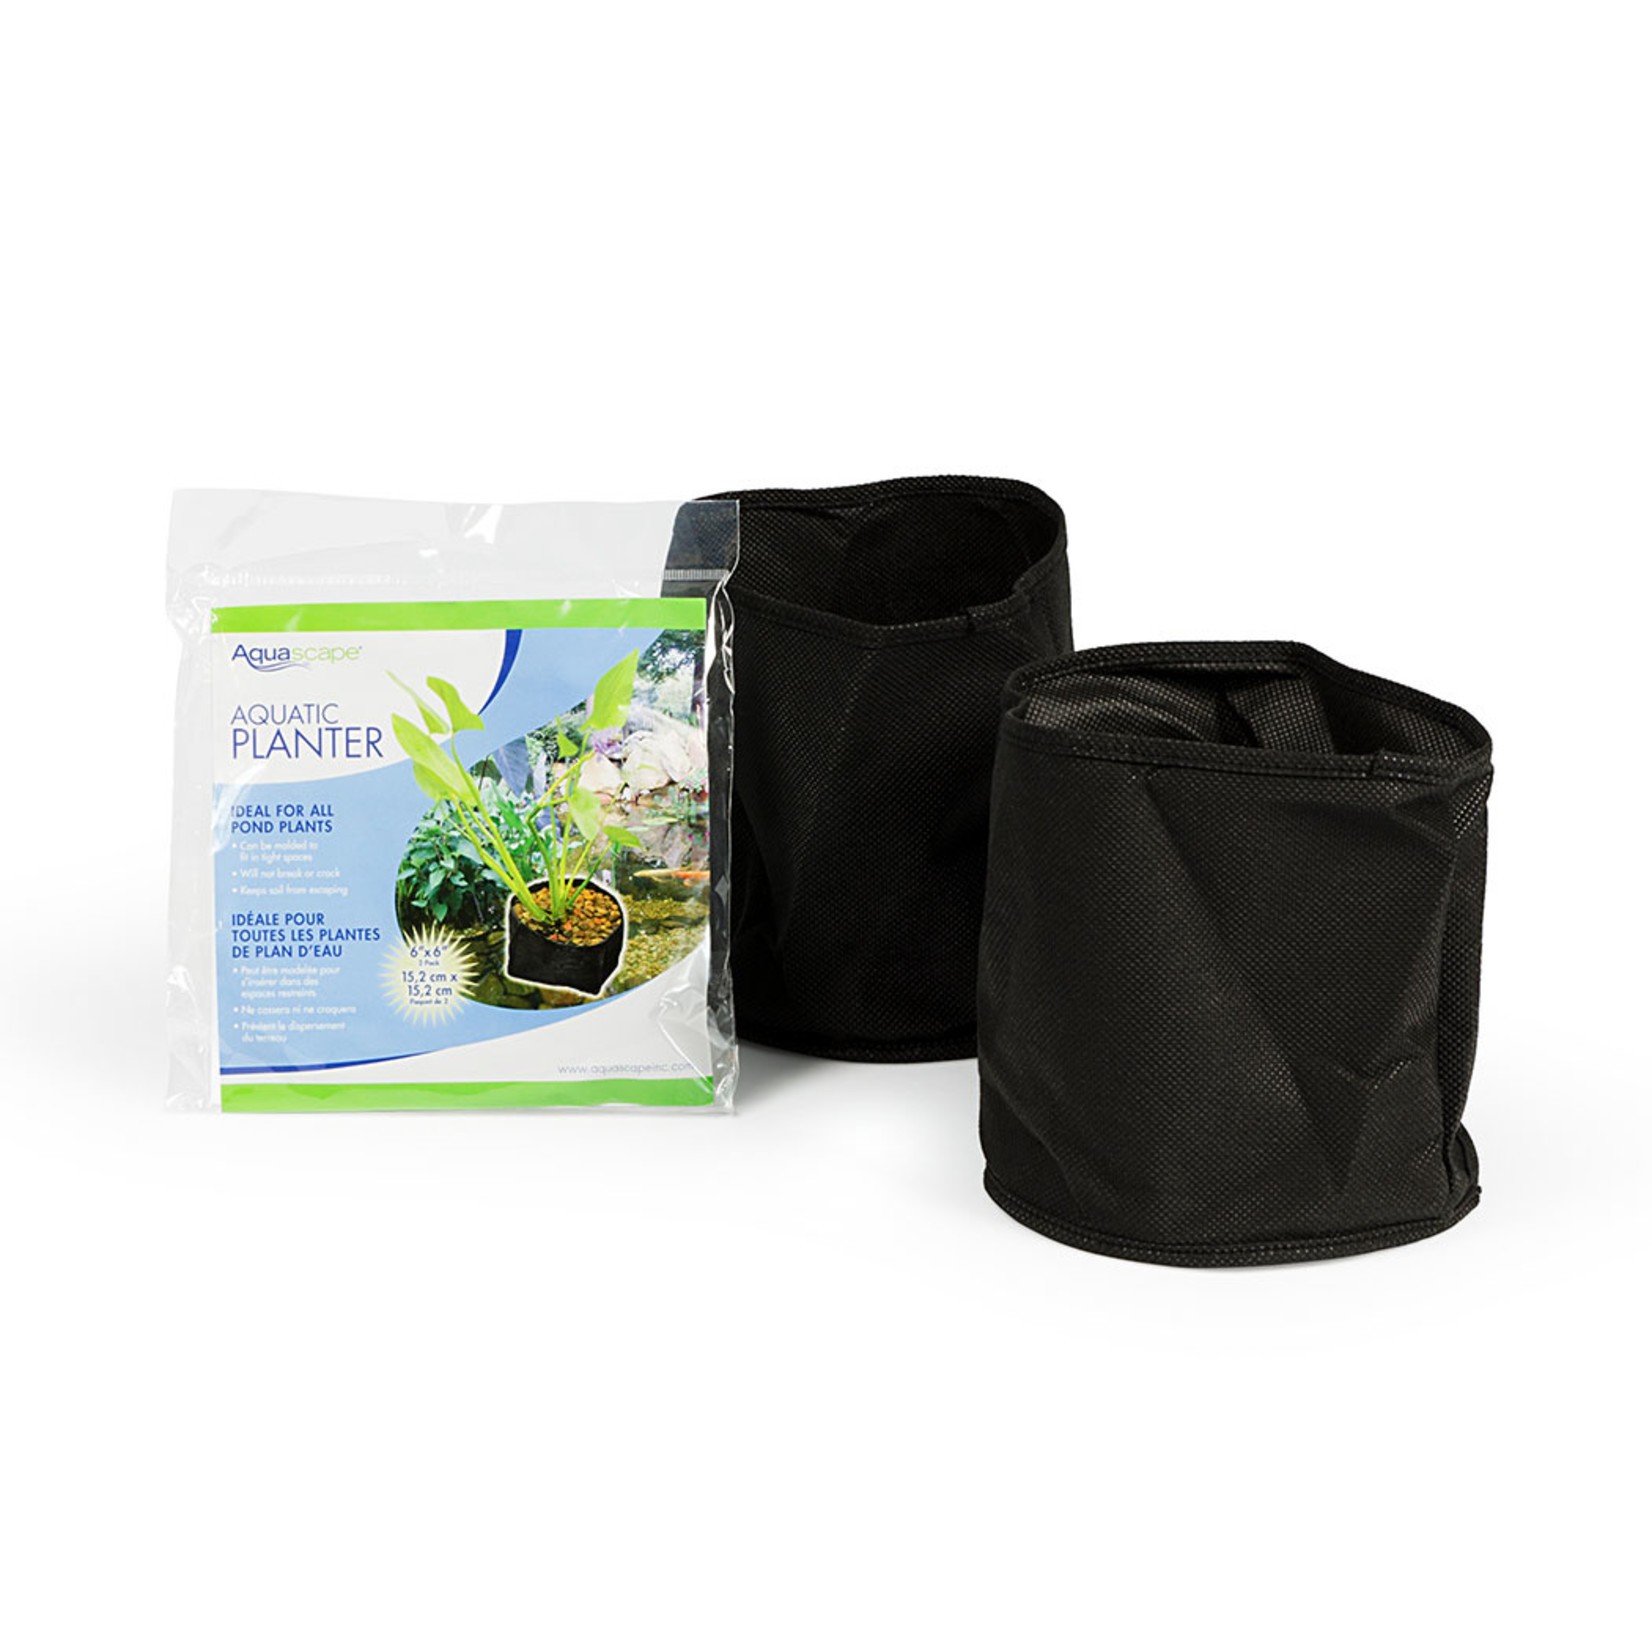 Aquascape Aquatic Planter